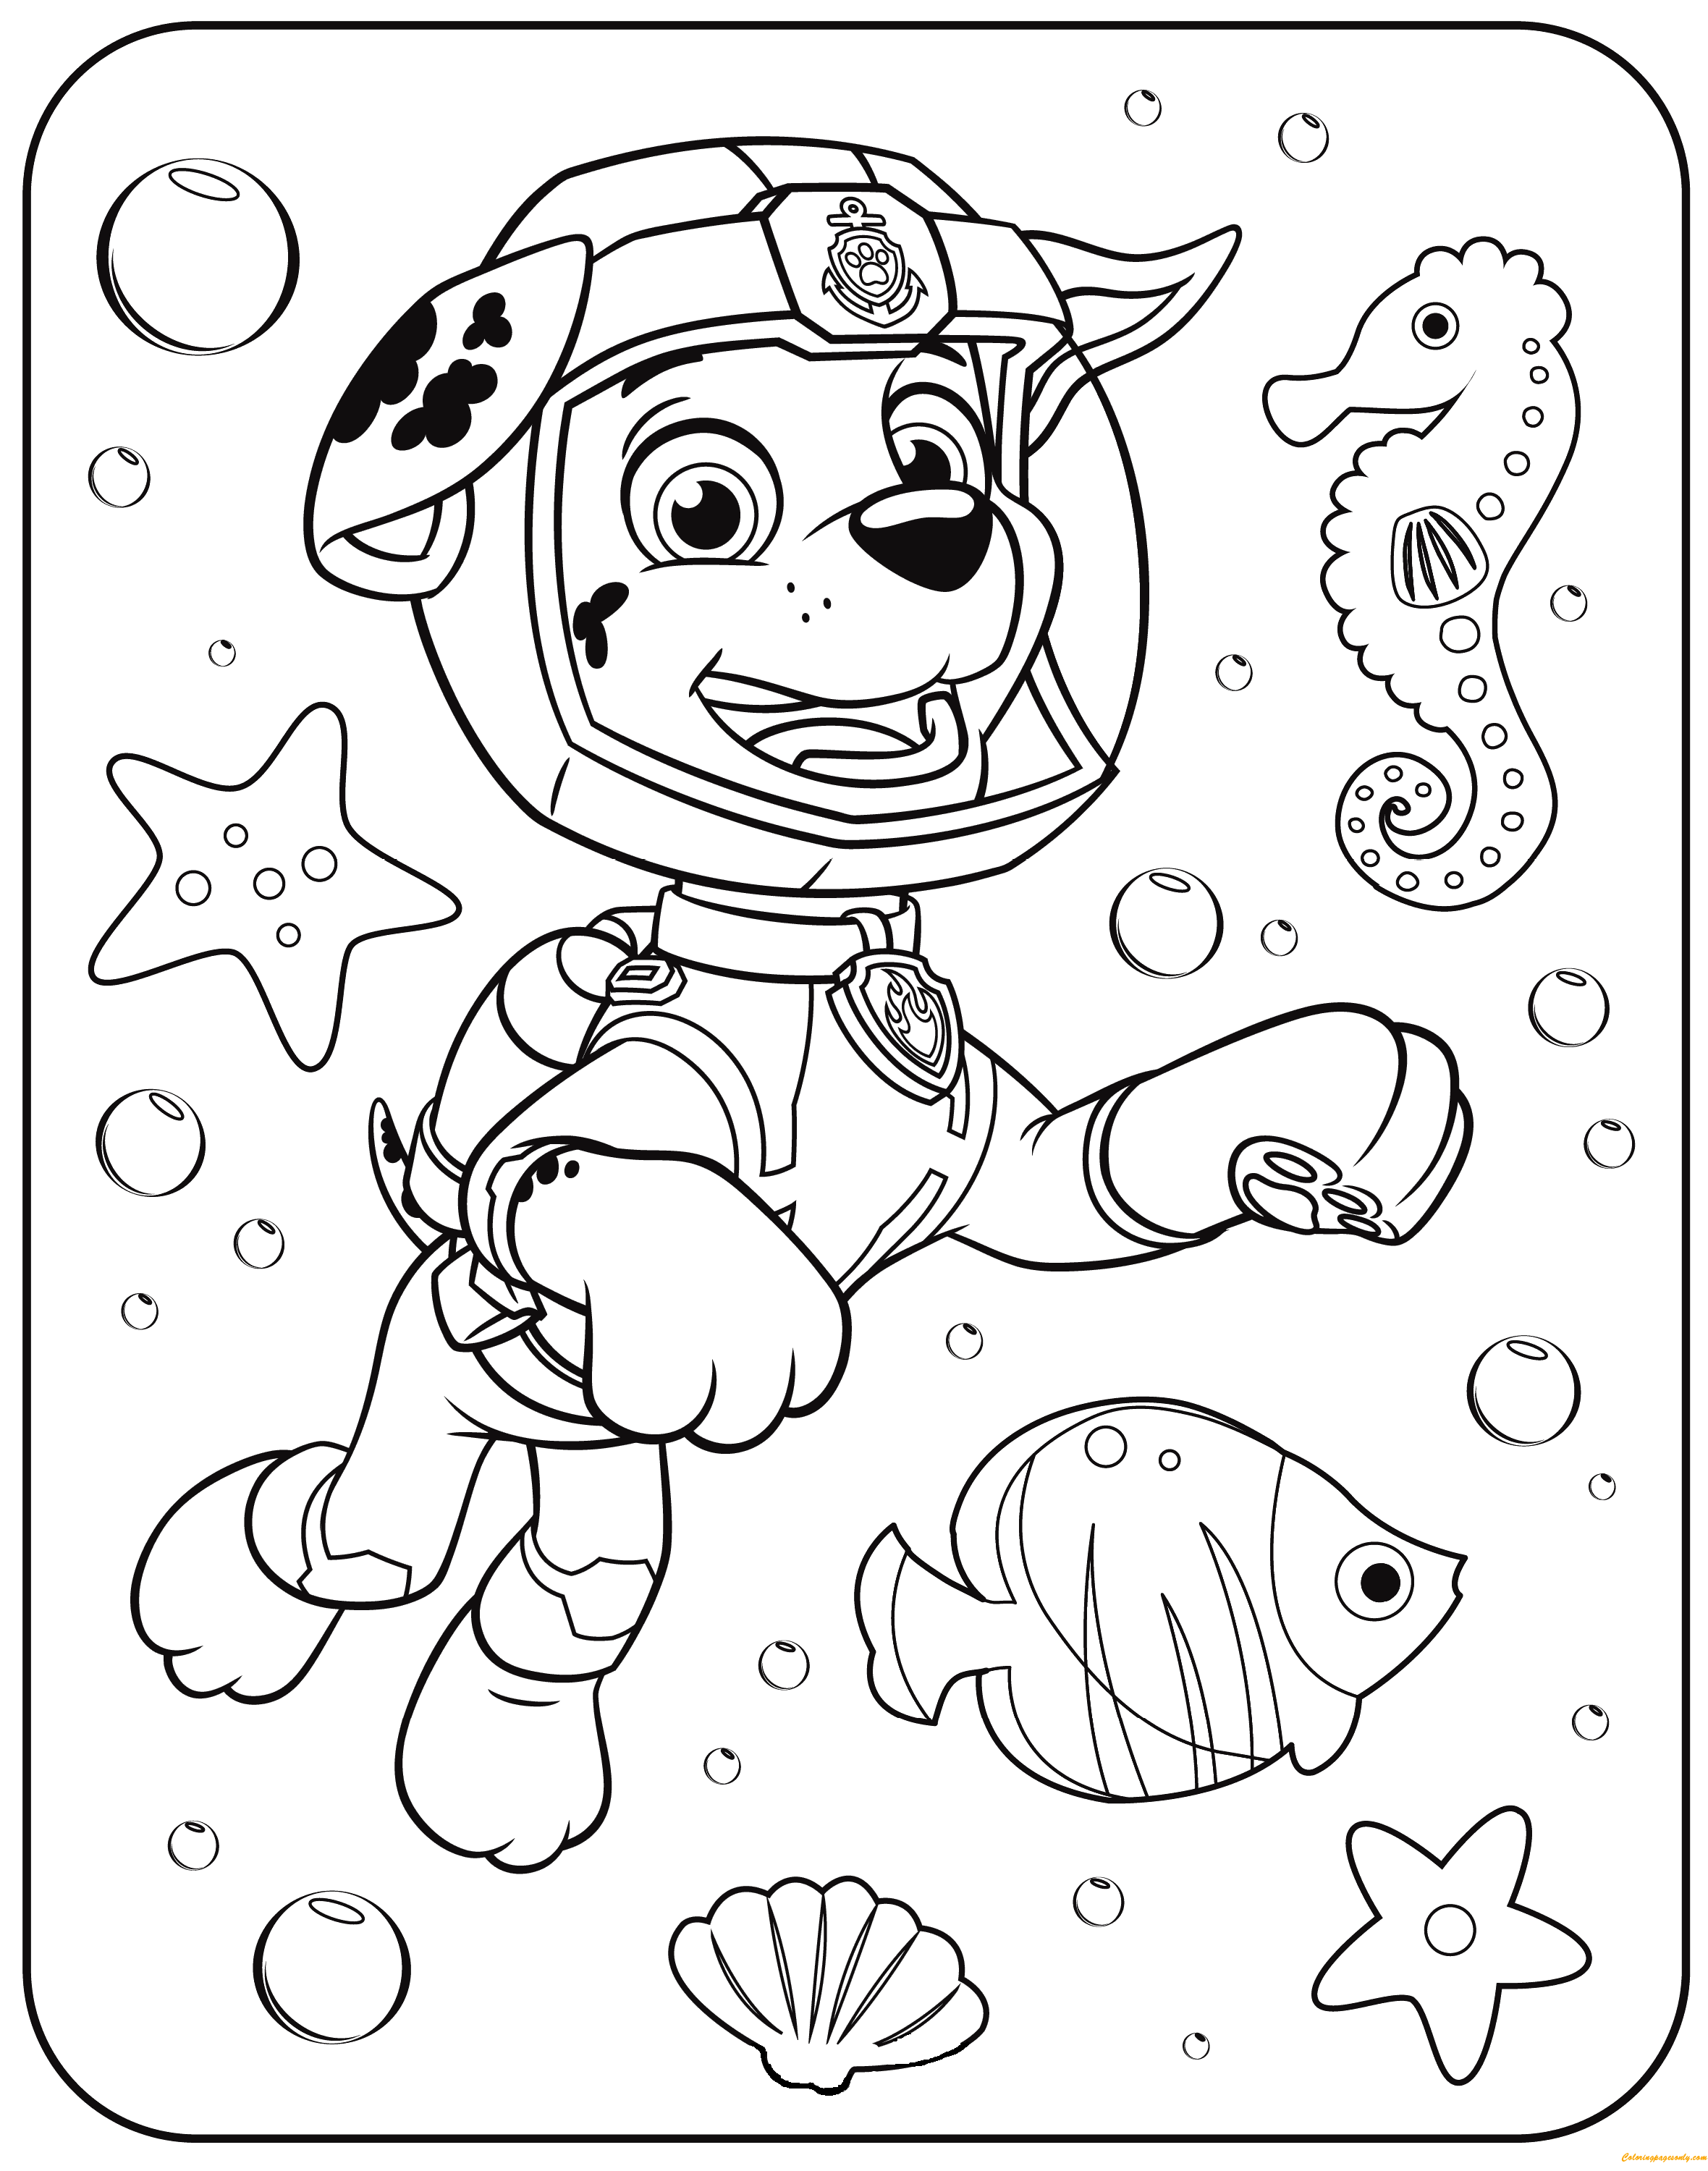 Paw Patrol Marshall Underwater Coloring Page Free Coloring Pages Coloring Home